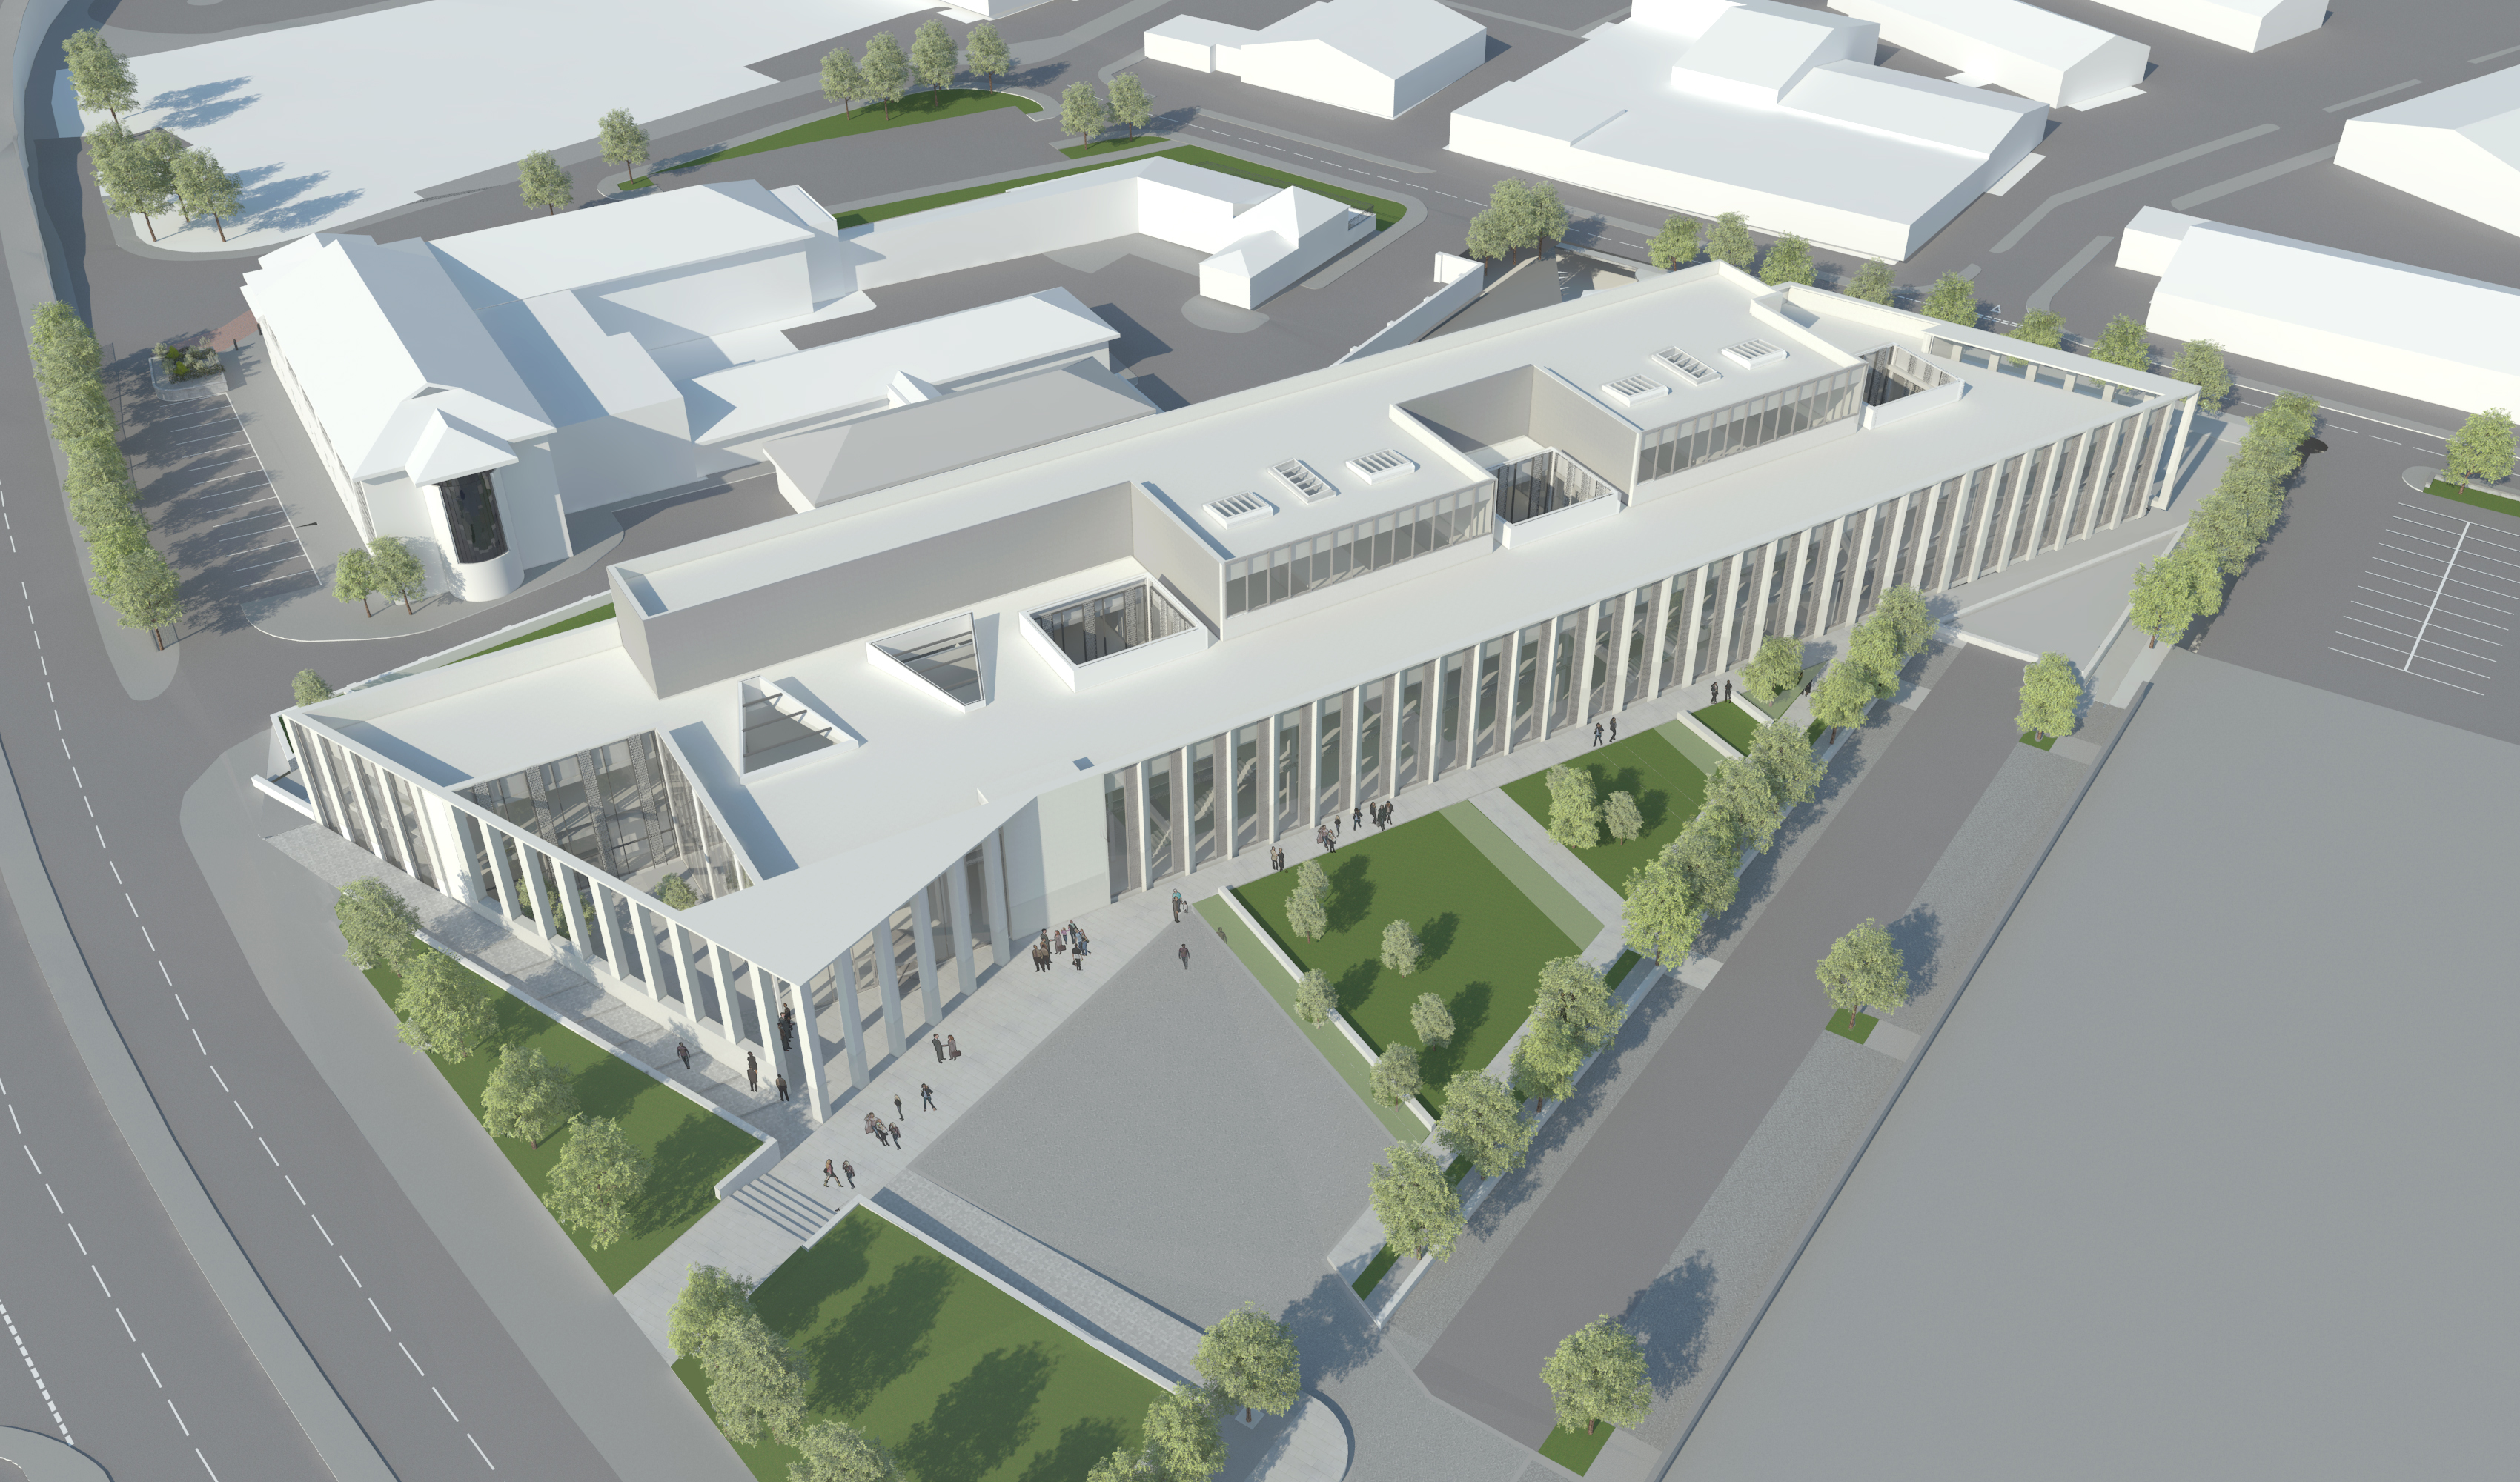 A birds eye view of the new Inverness Justice Centre